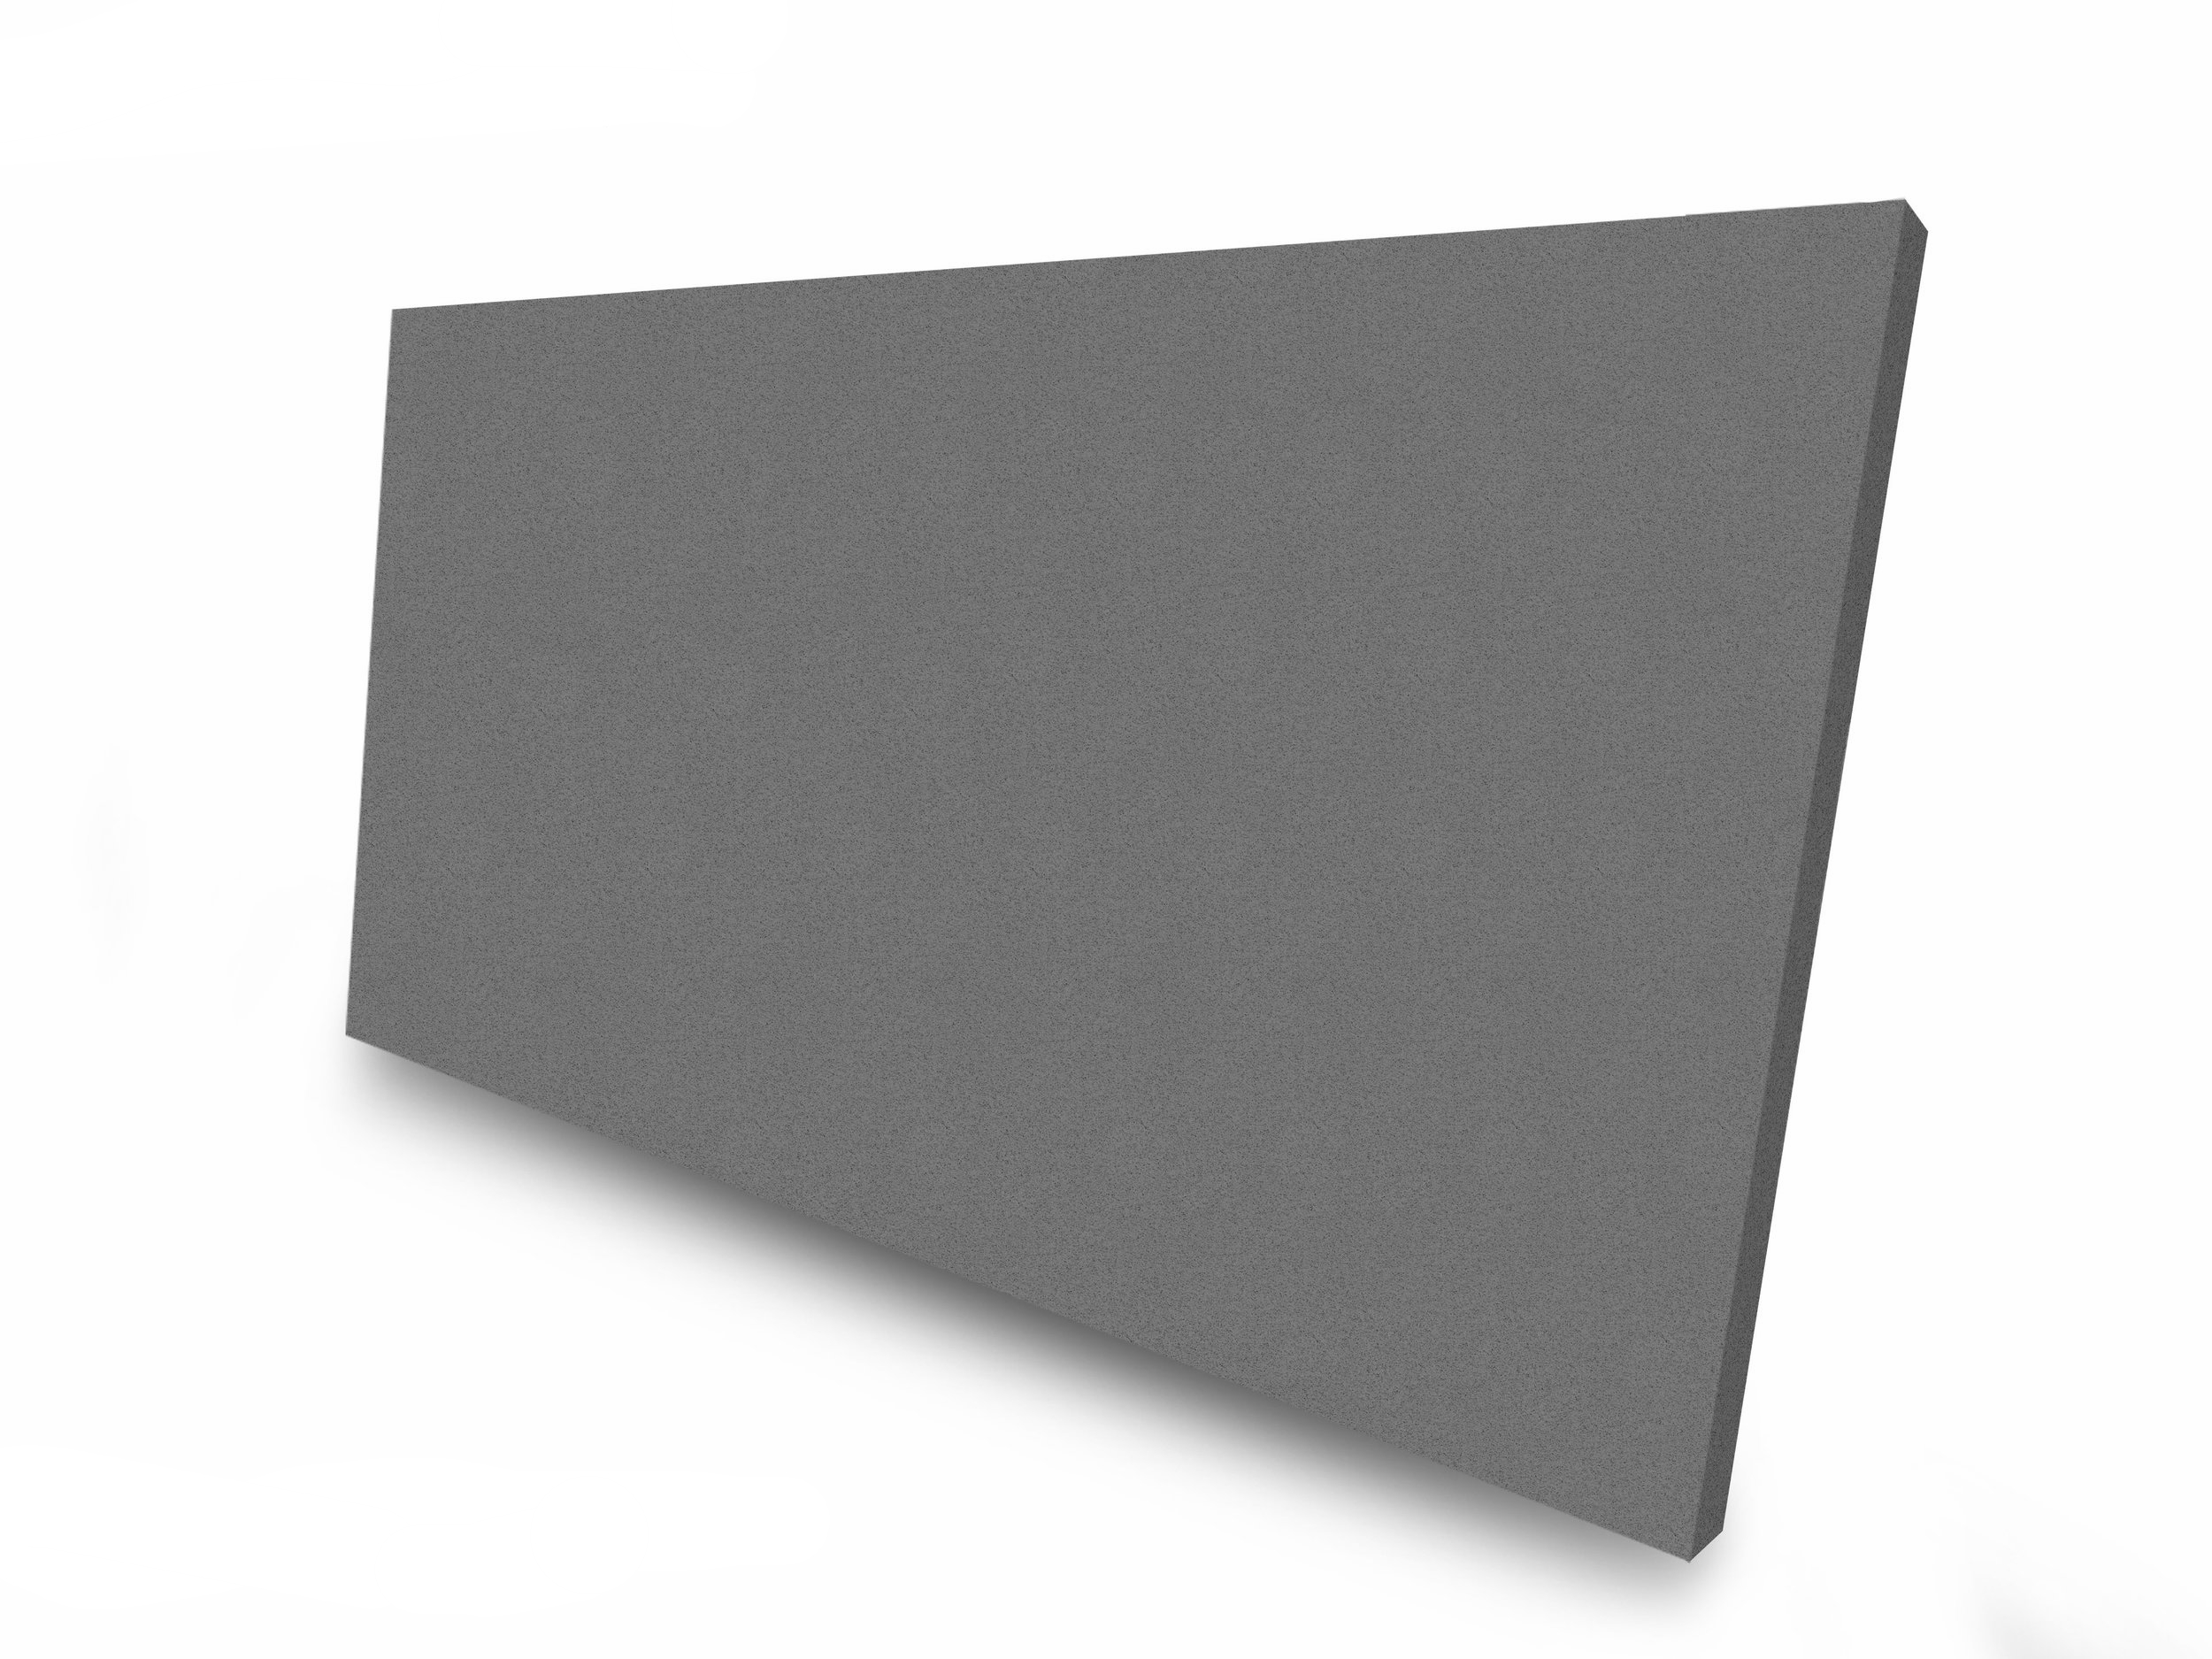 CQ700 Concrete Grey Slab